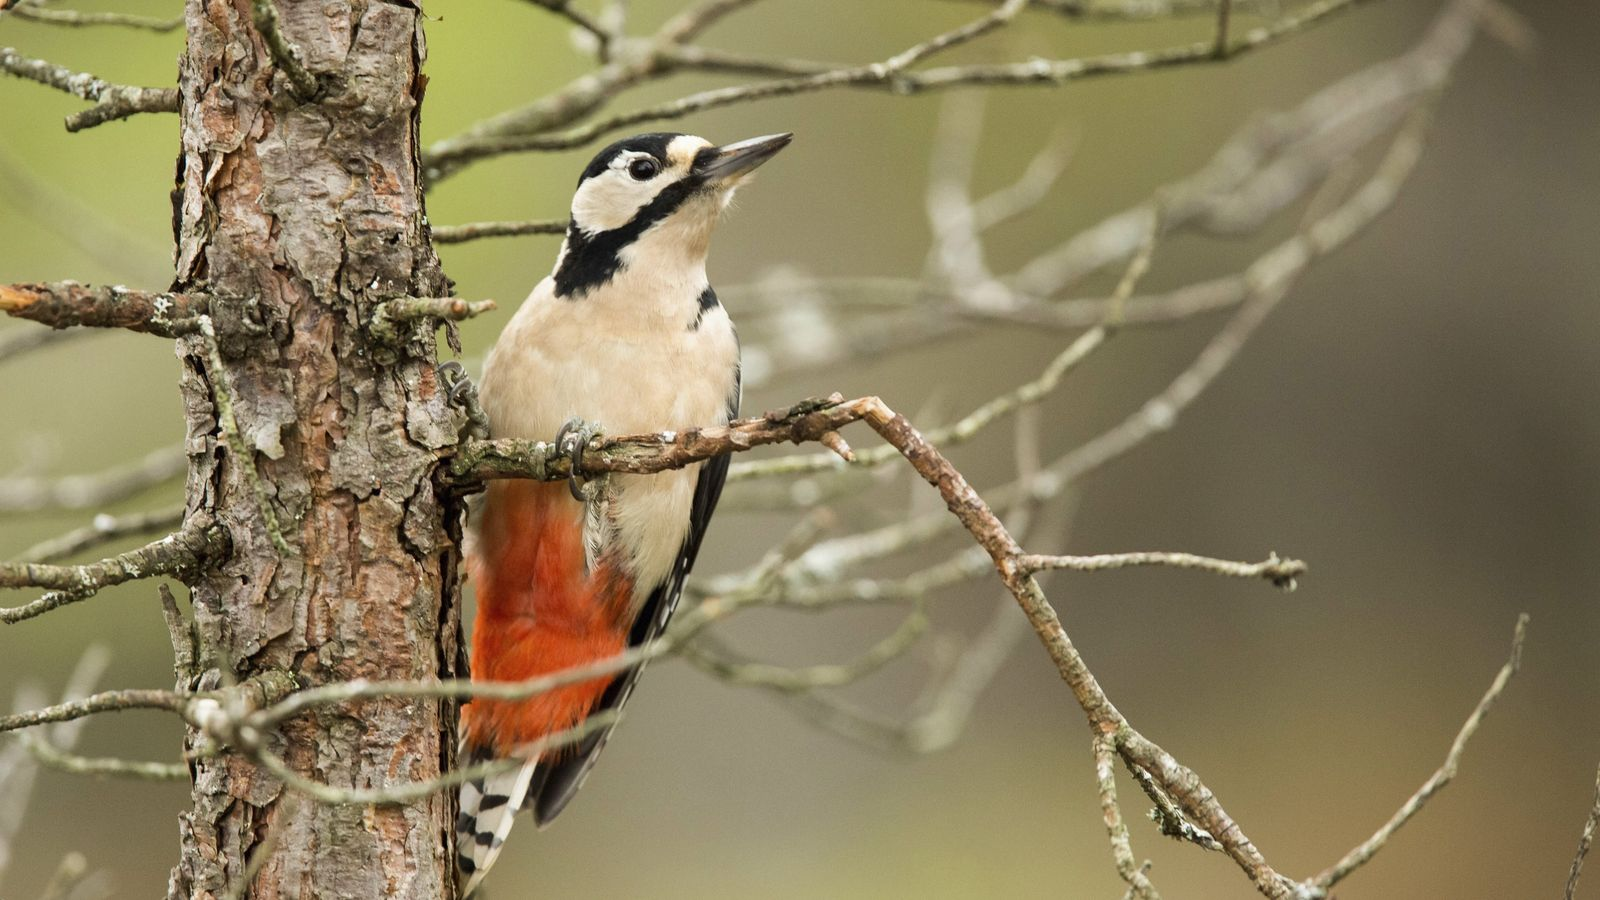 A great spotted woodpecker, 'Dendrocopos major', adult perched on a Scots pine and looking for grubs.